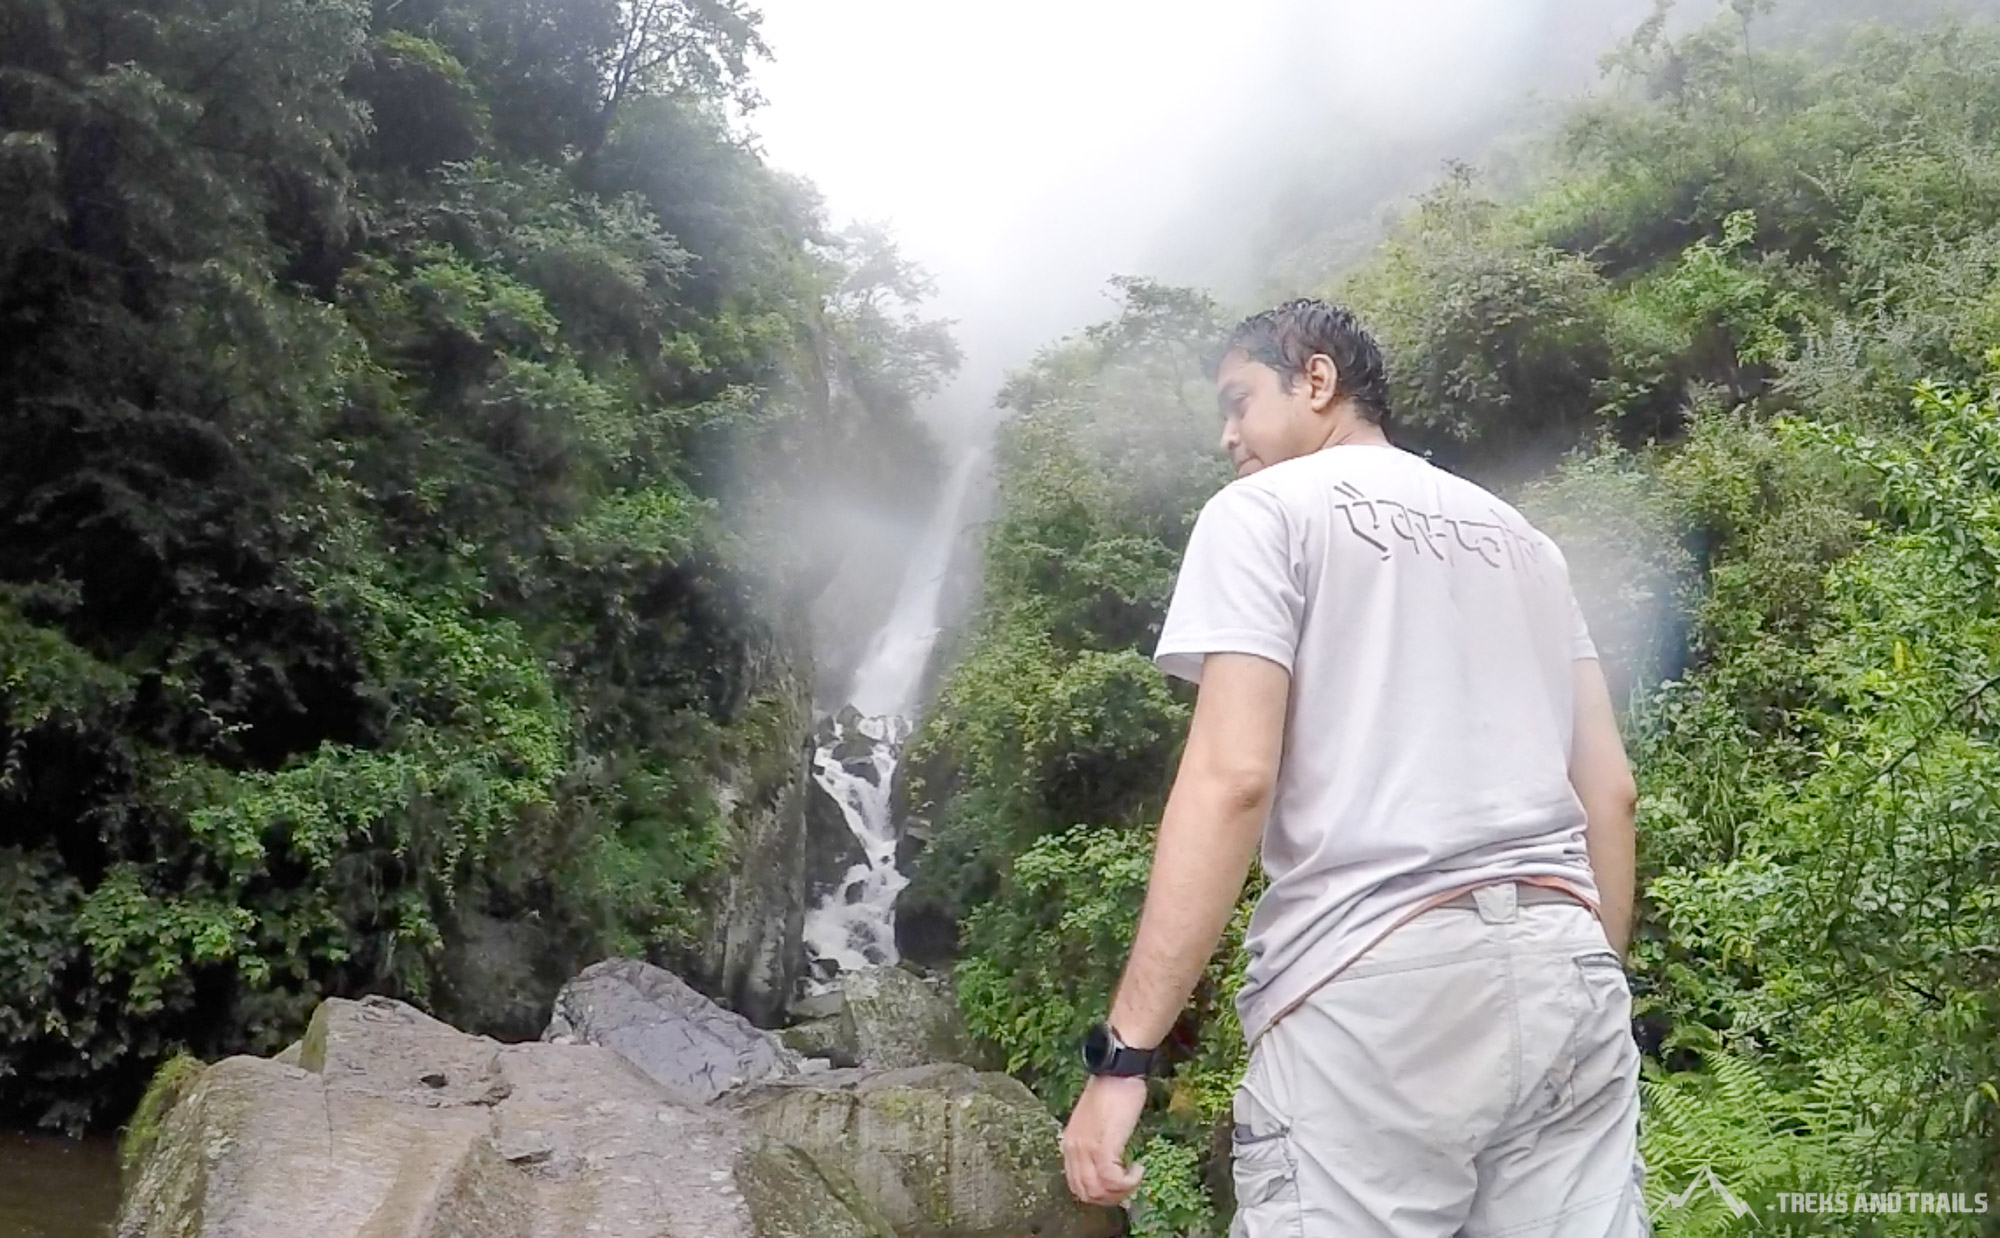 Waterfall Manali - Treks and Trails India